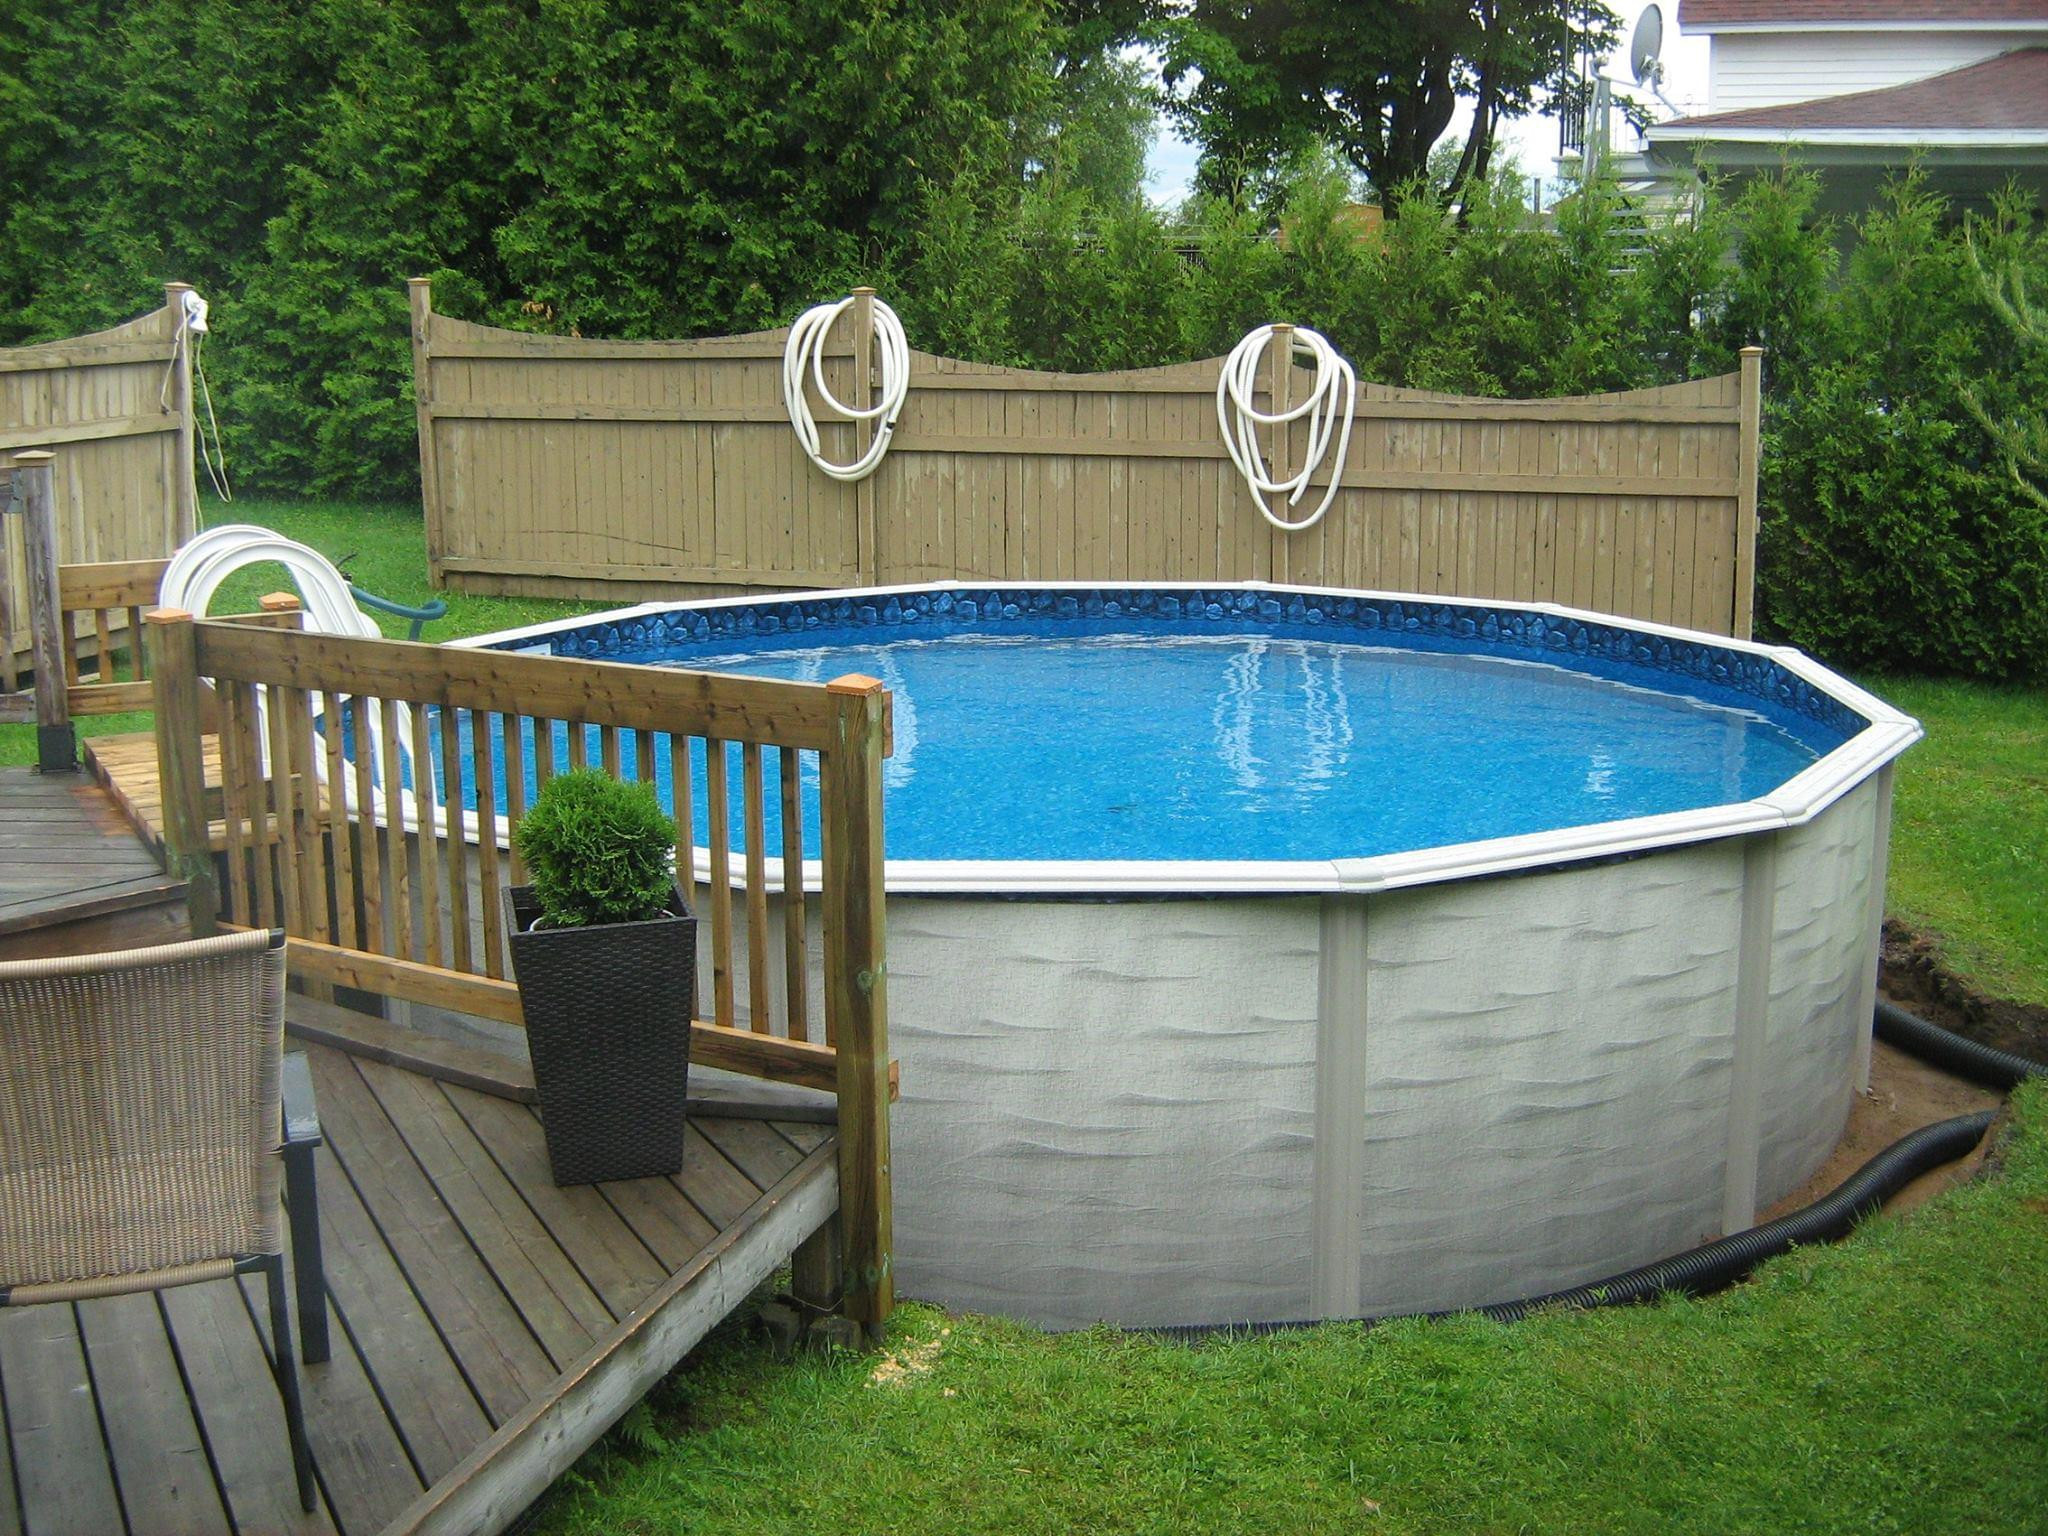 Evolution 24 pied ronde piscine hor magasin de piscine for Forfait piscine